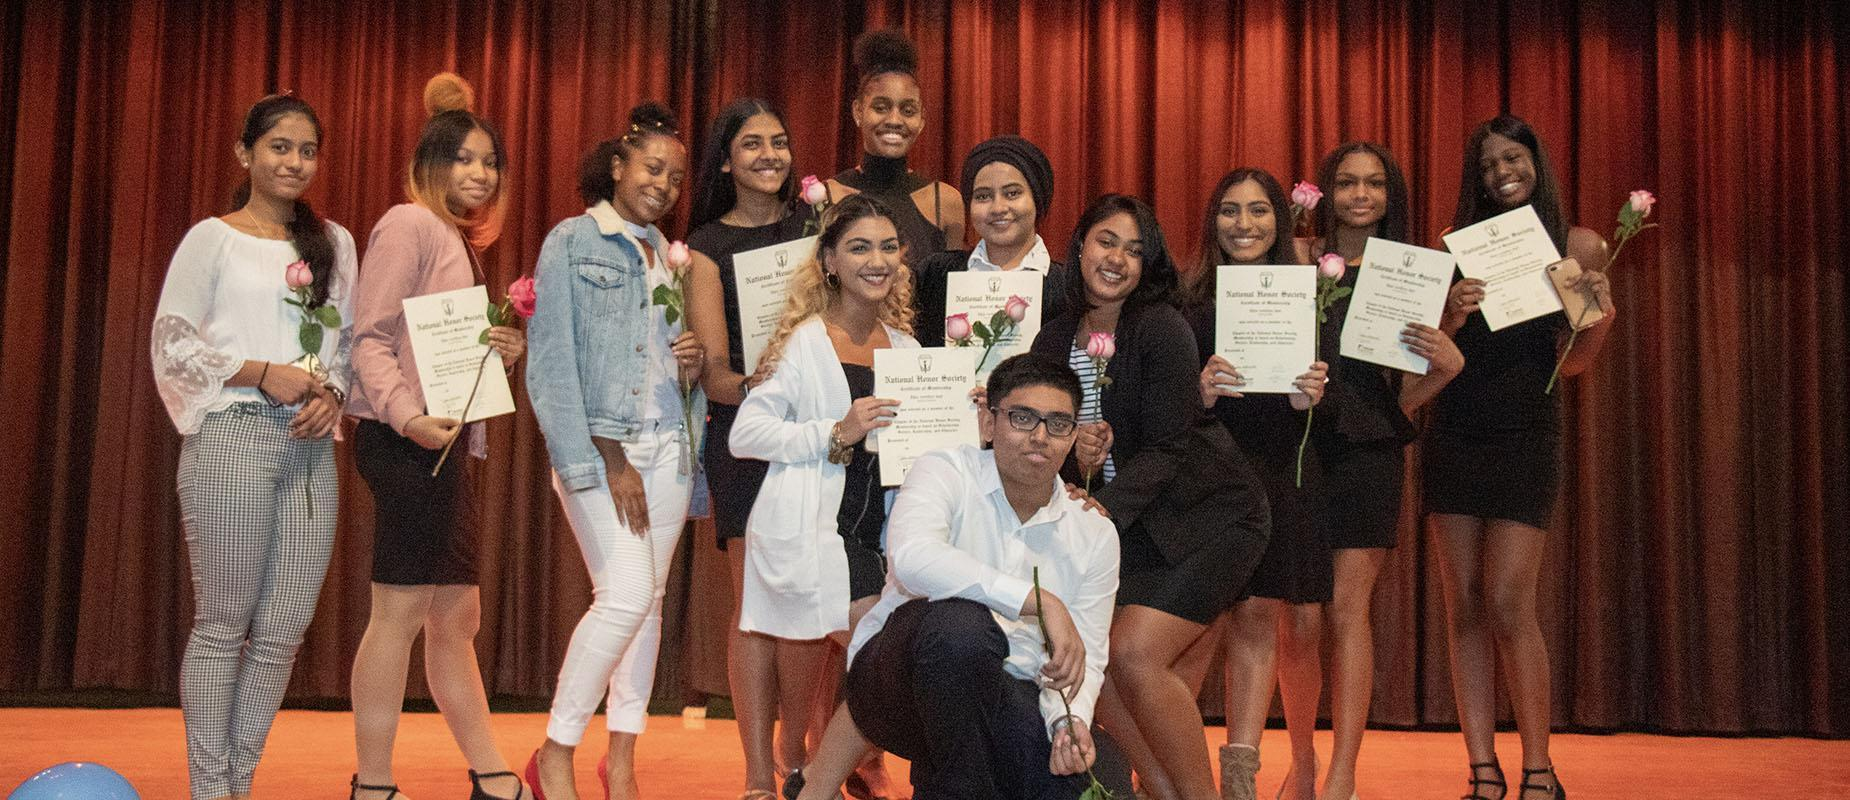 2019-2020 National Honor Society Induction Ceremony